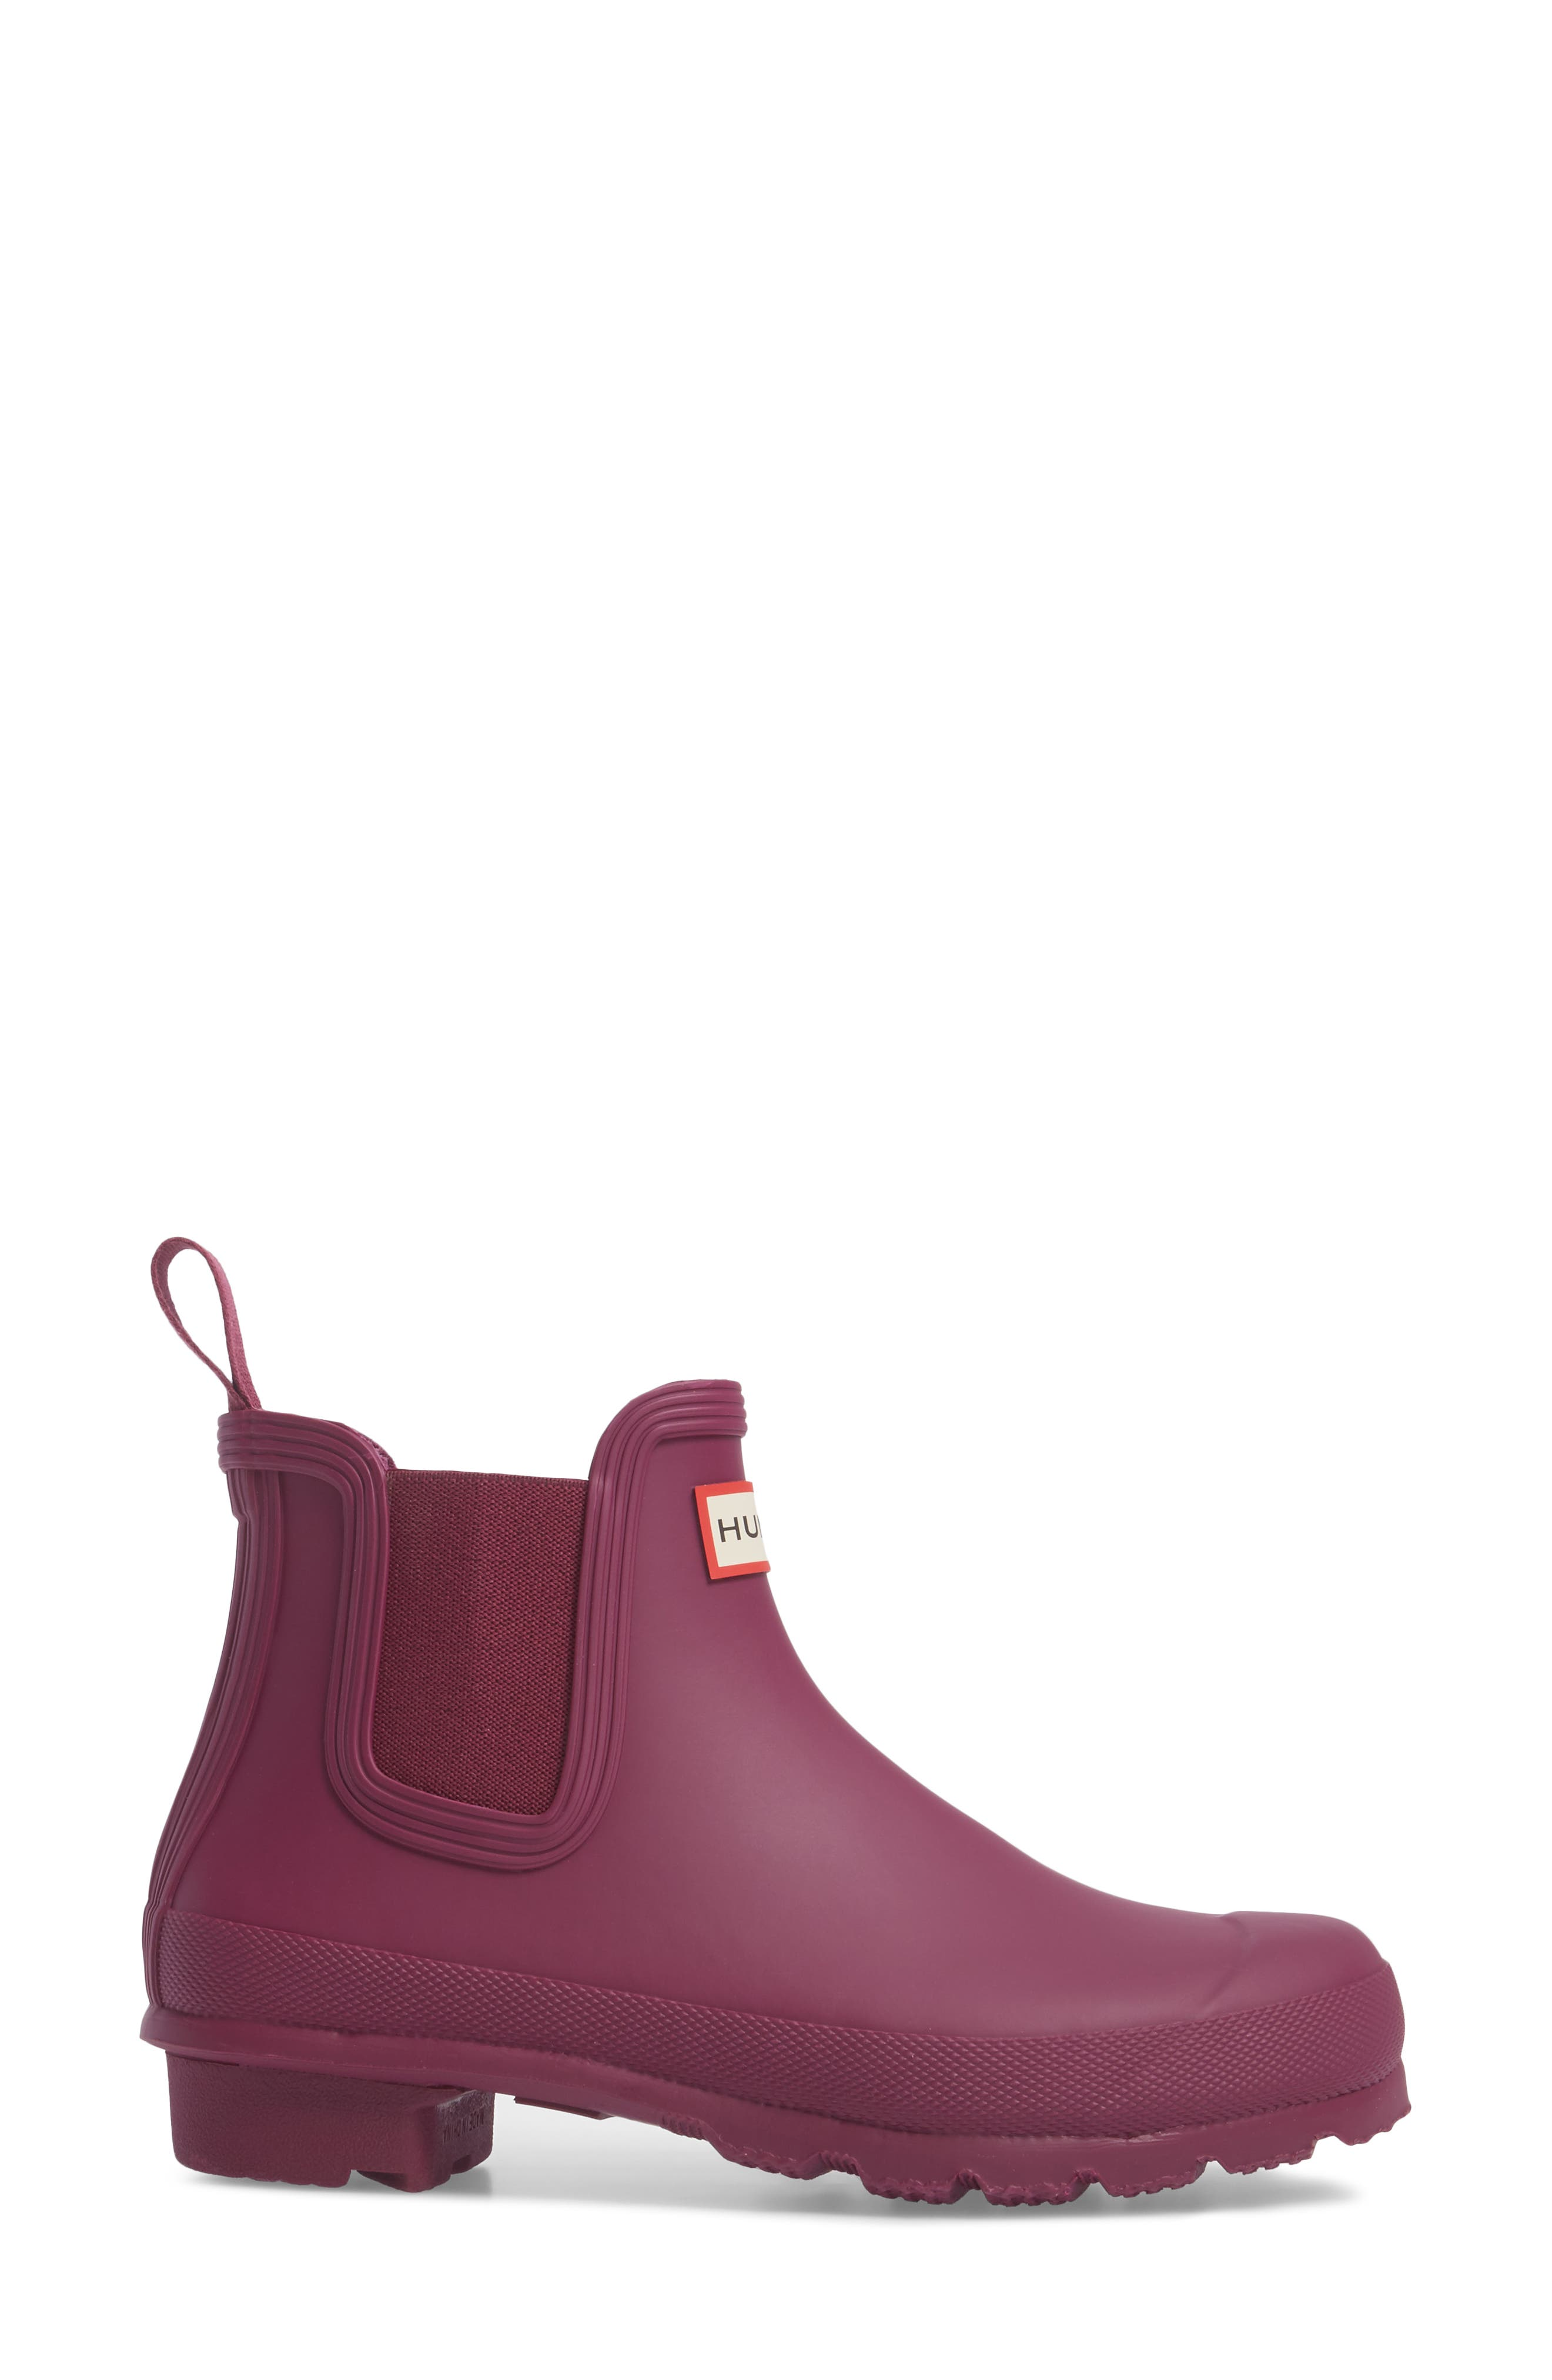 'Original' Waterproof Chelsea Rain Boot,                             Alternate thumbnail 3, color,                             Violet